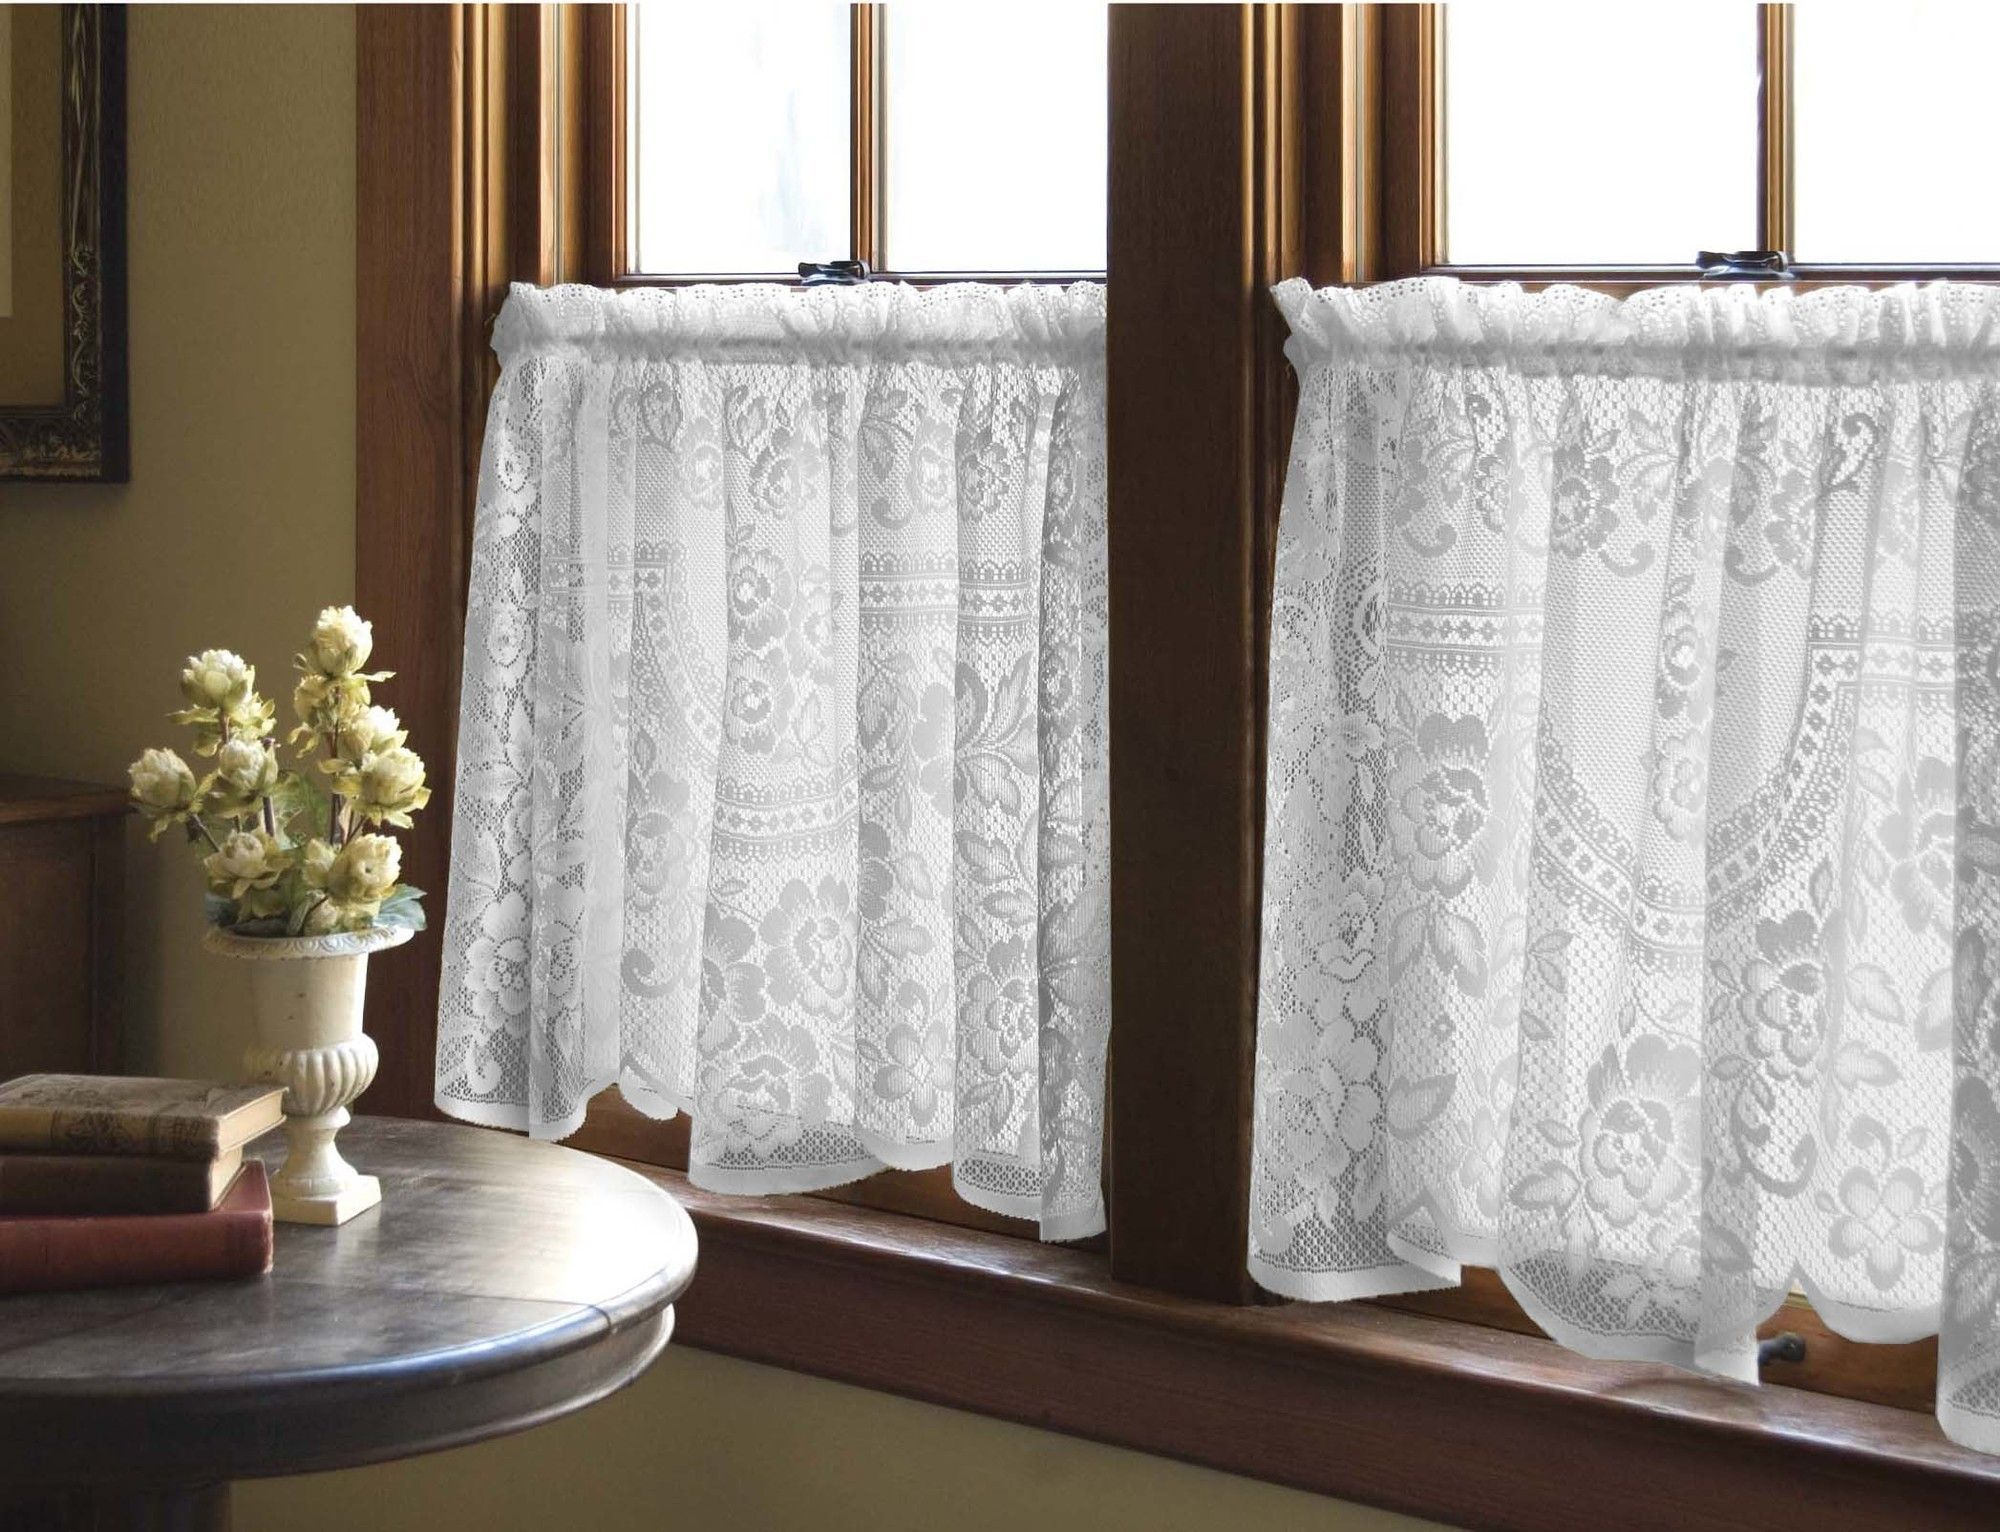 Heritage Lace Victorian Rose Tier Curtain Victorian Curtains Rose Curtains Curtains Living Room #tier #curtains #living #room